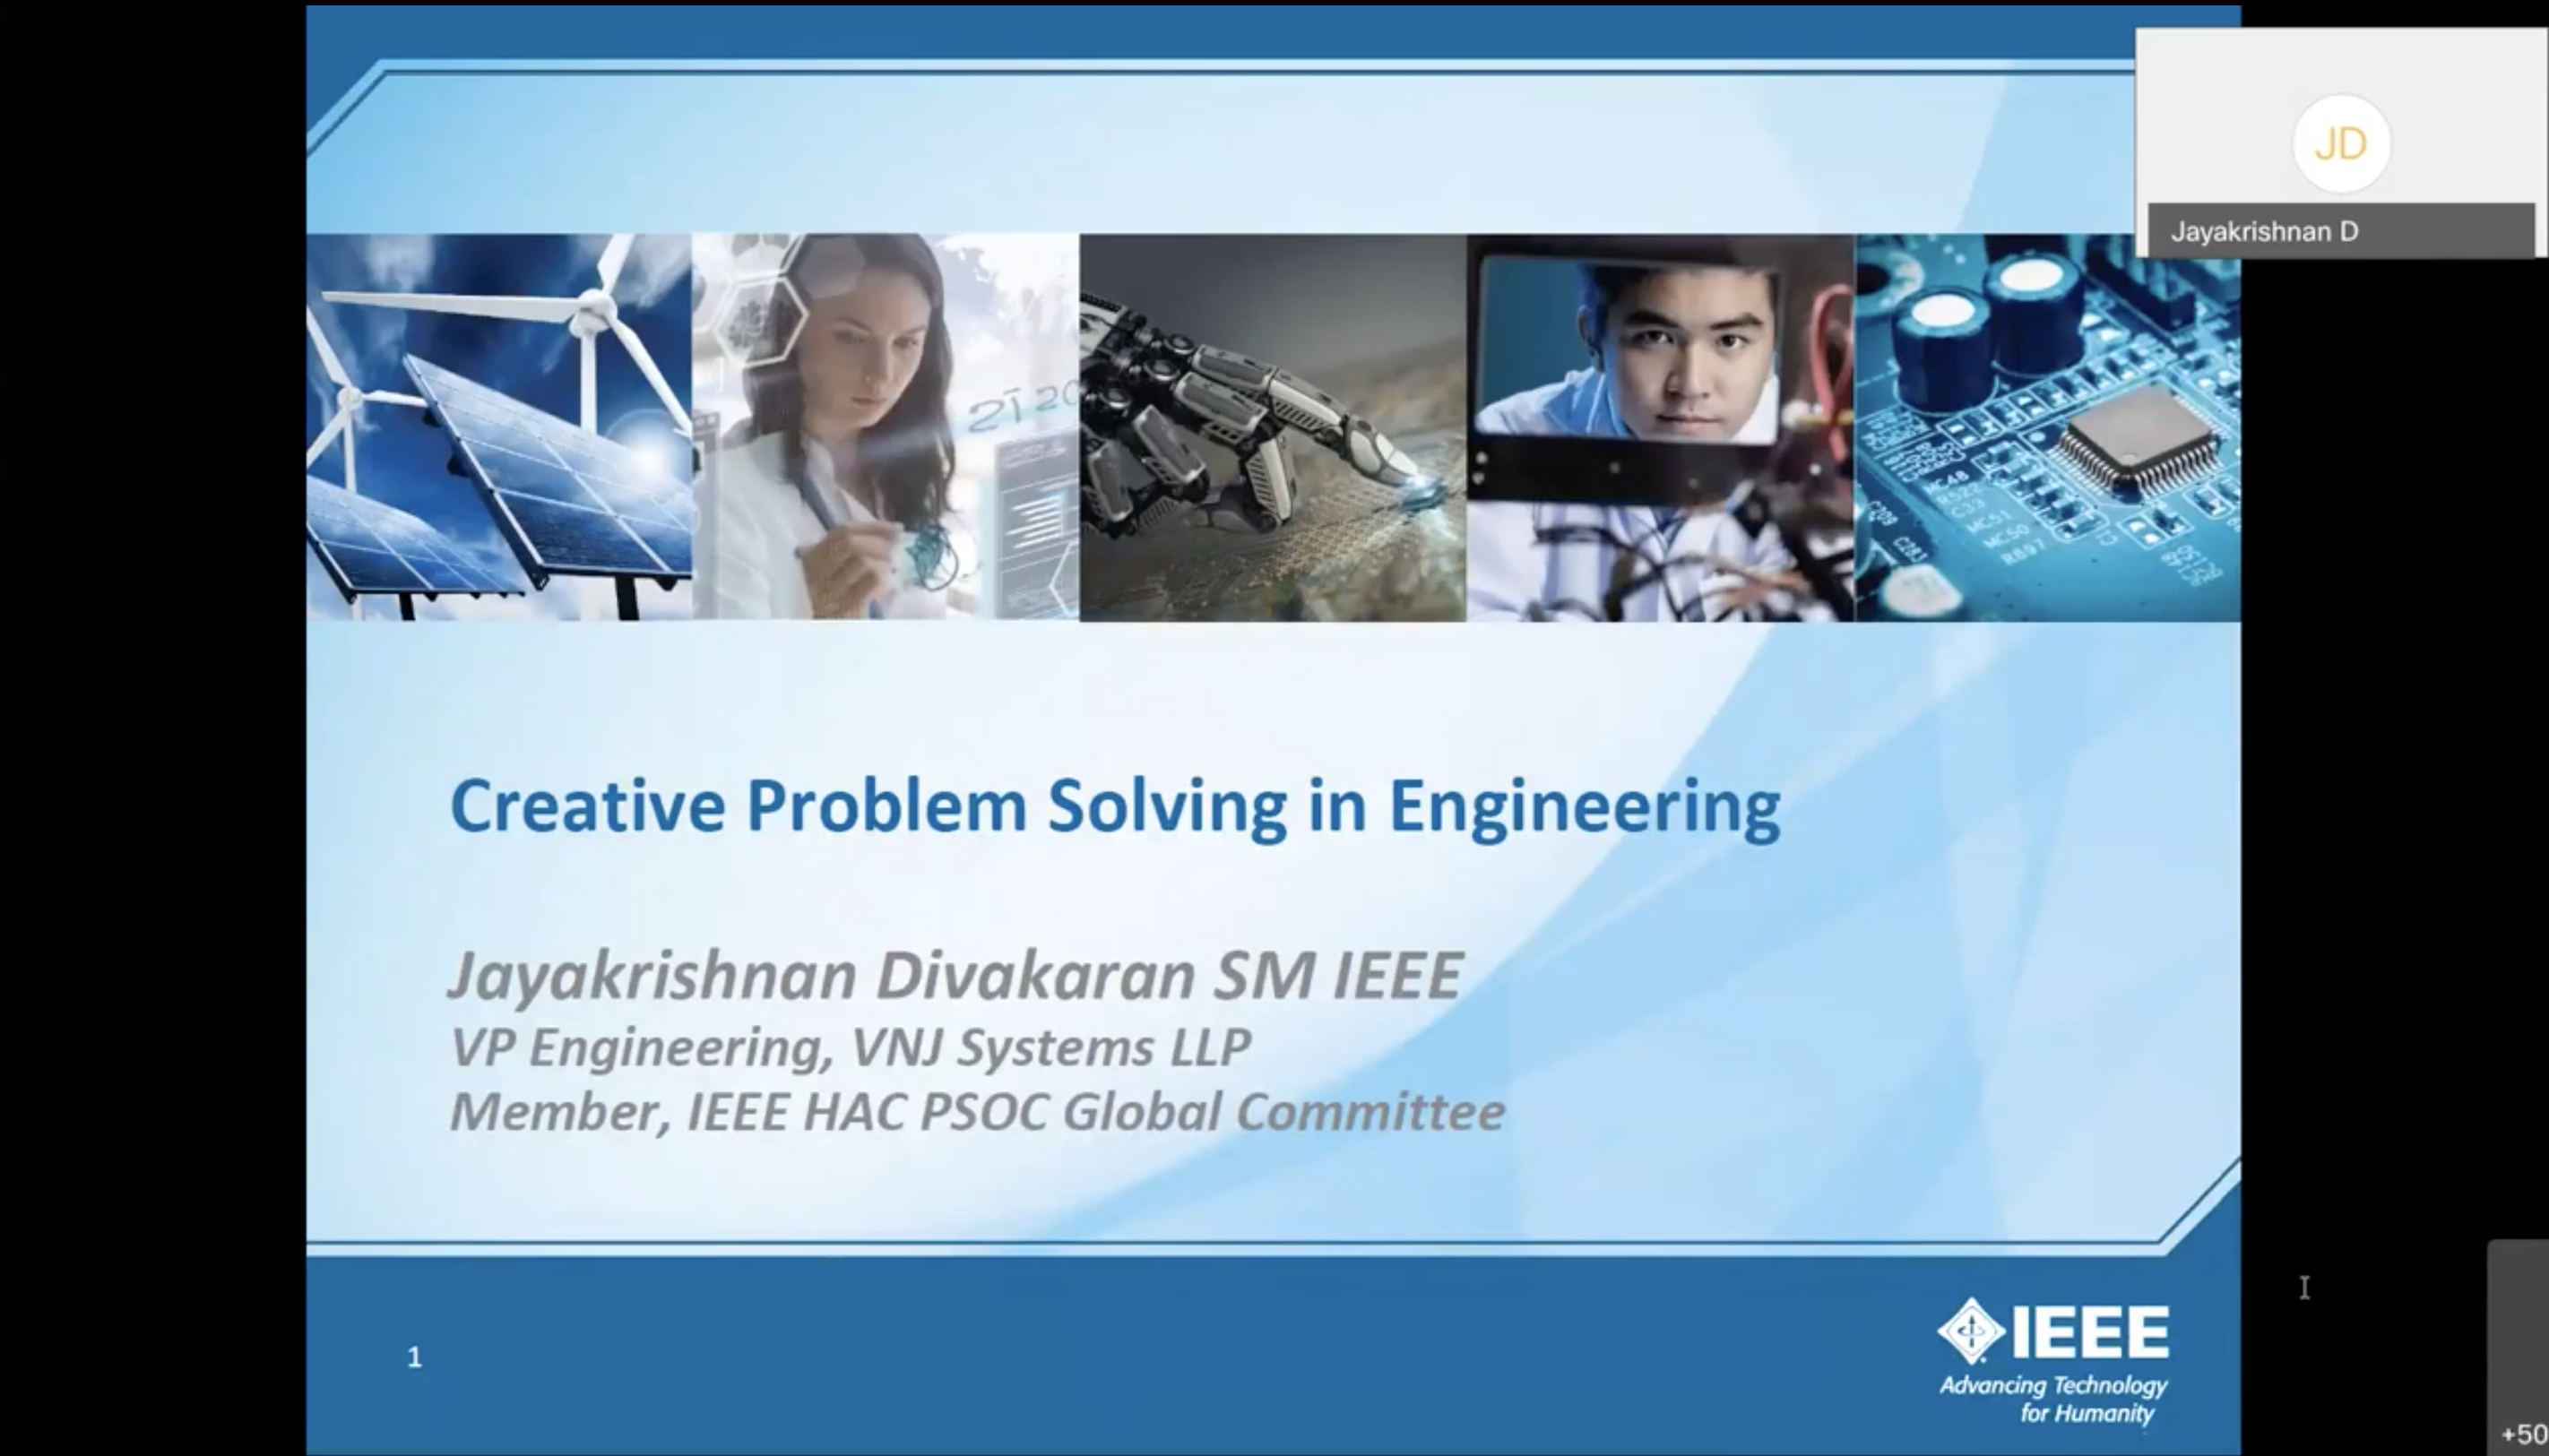 Creative Problem Solving in Engineering